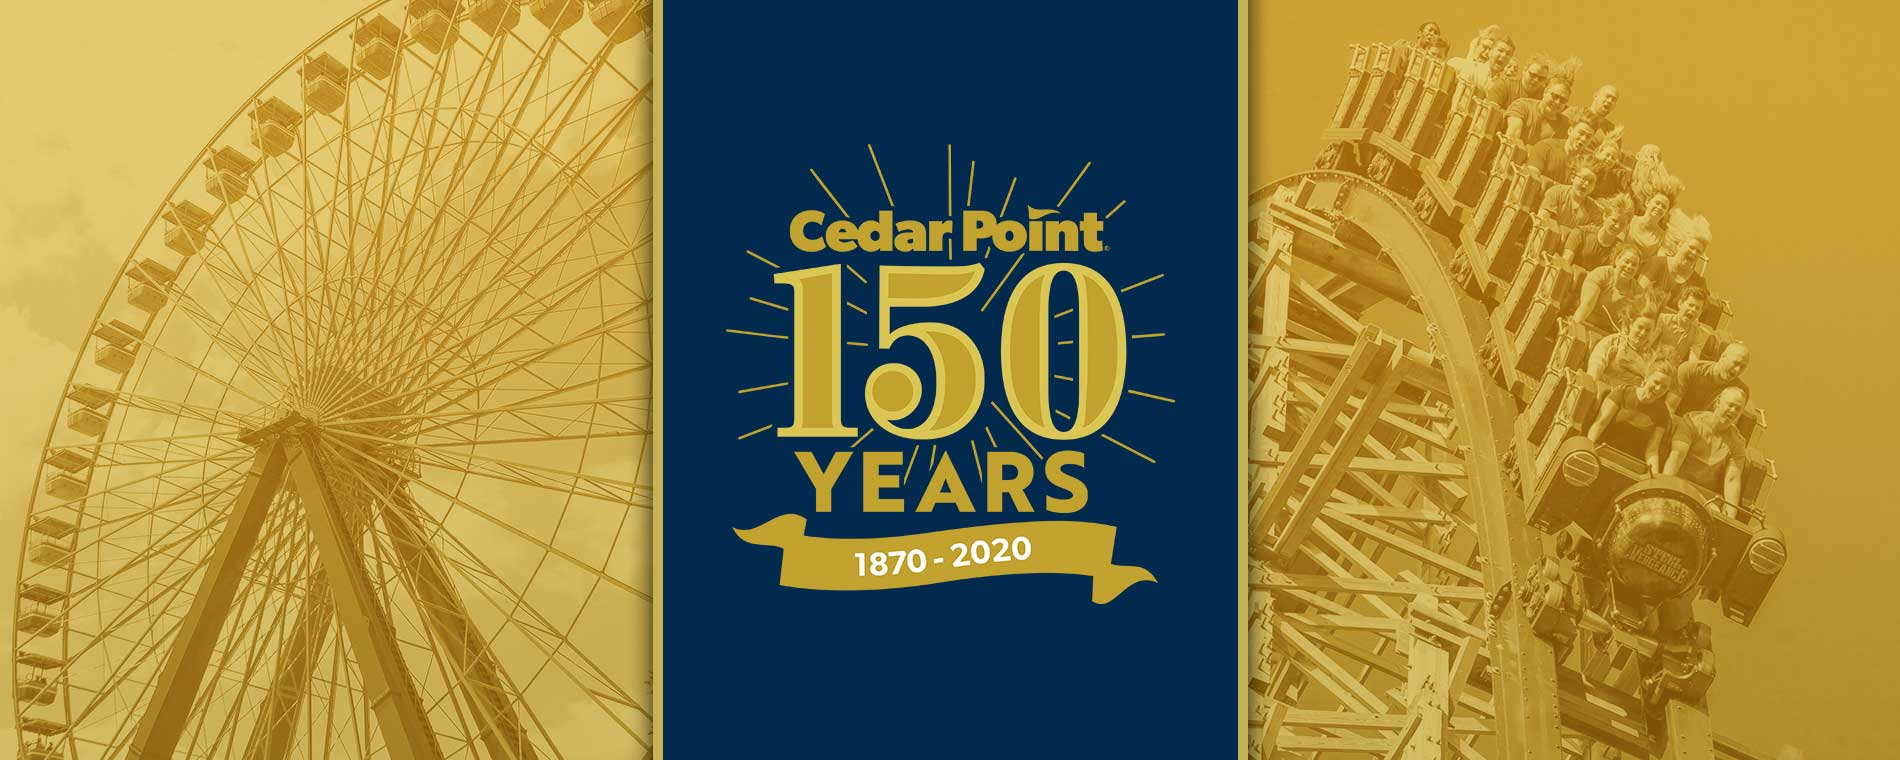 Cedar Point 150th Anniversary